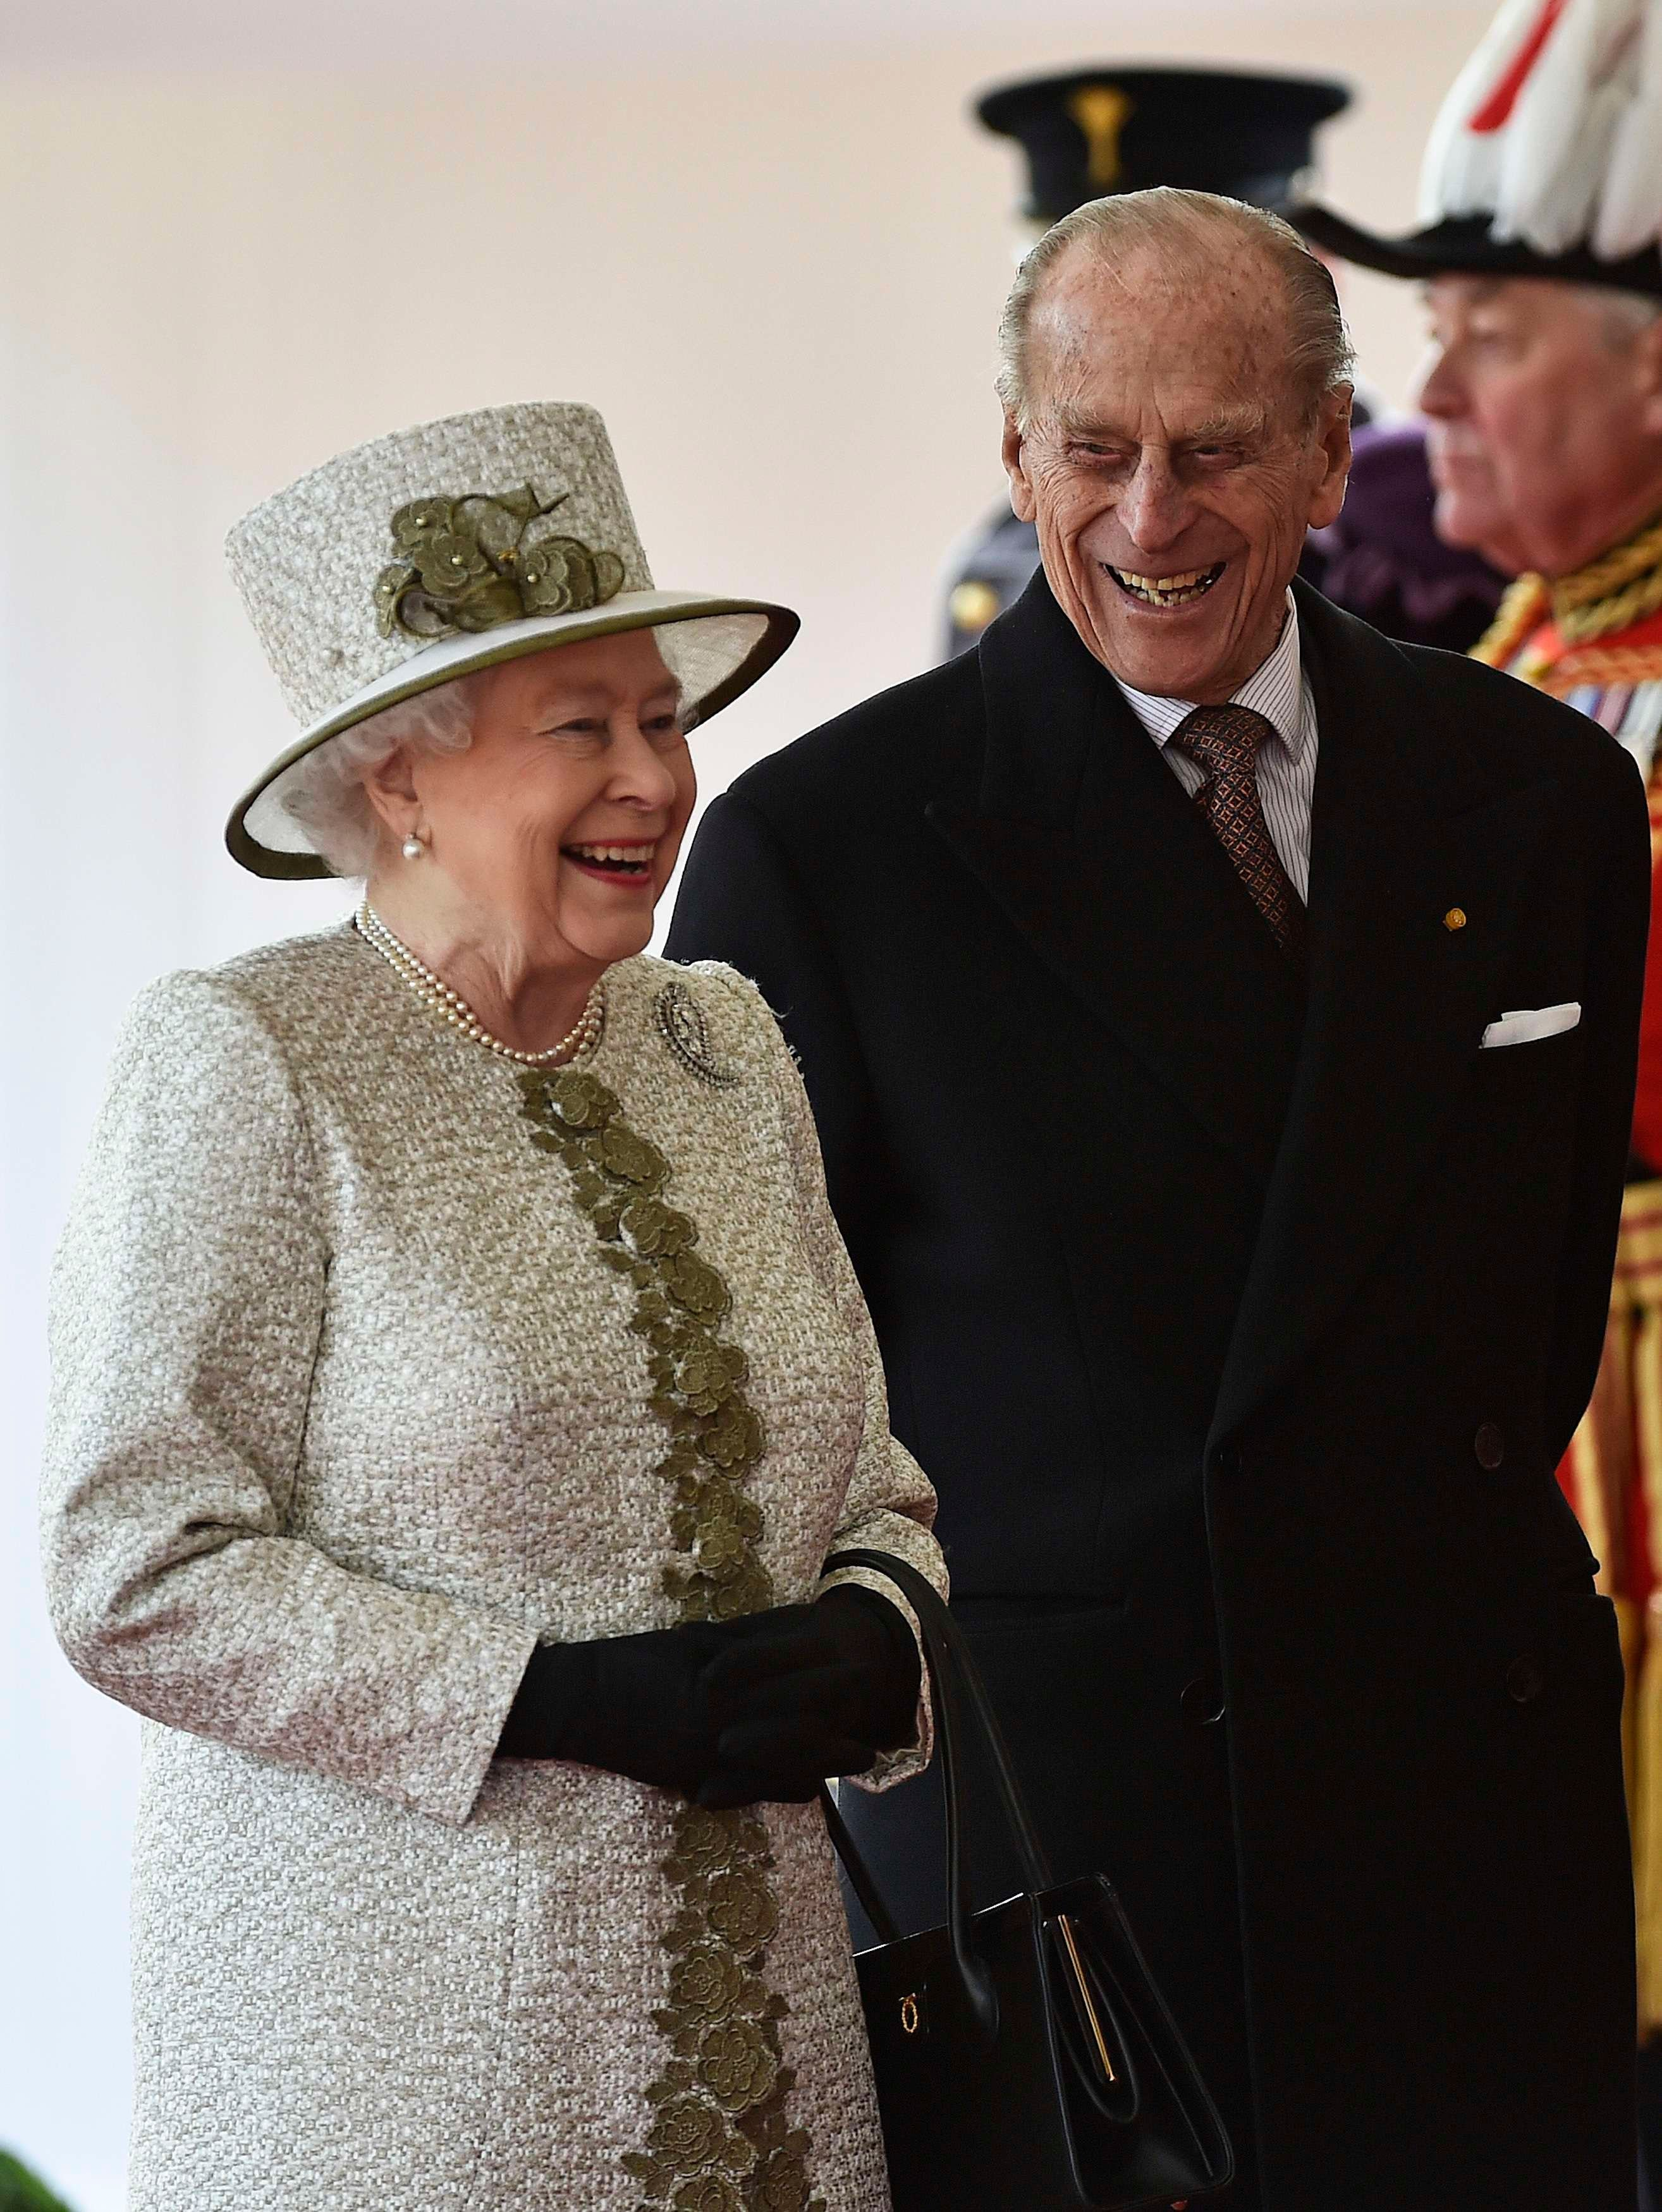 Queen Elizabeth II and Prince Philip at a ceremonial welcome for the State Visit of The President of The United Mexican, Senor Enrique Pena Nieto and Senora Rivera at Horse Guards Parade on March 3, 2015 | Photo: Getty Images